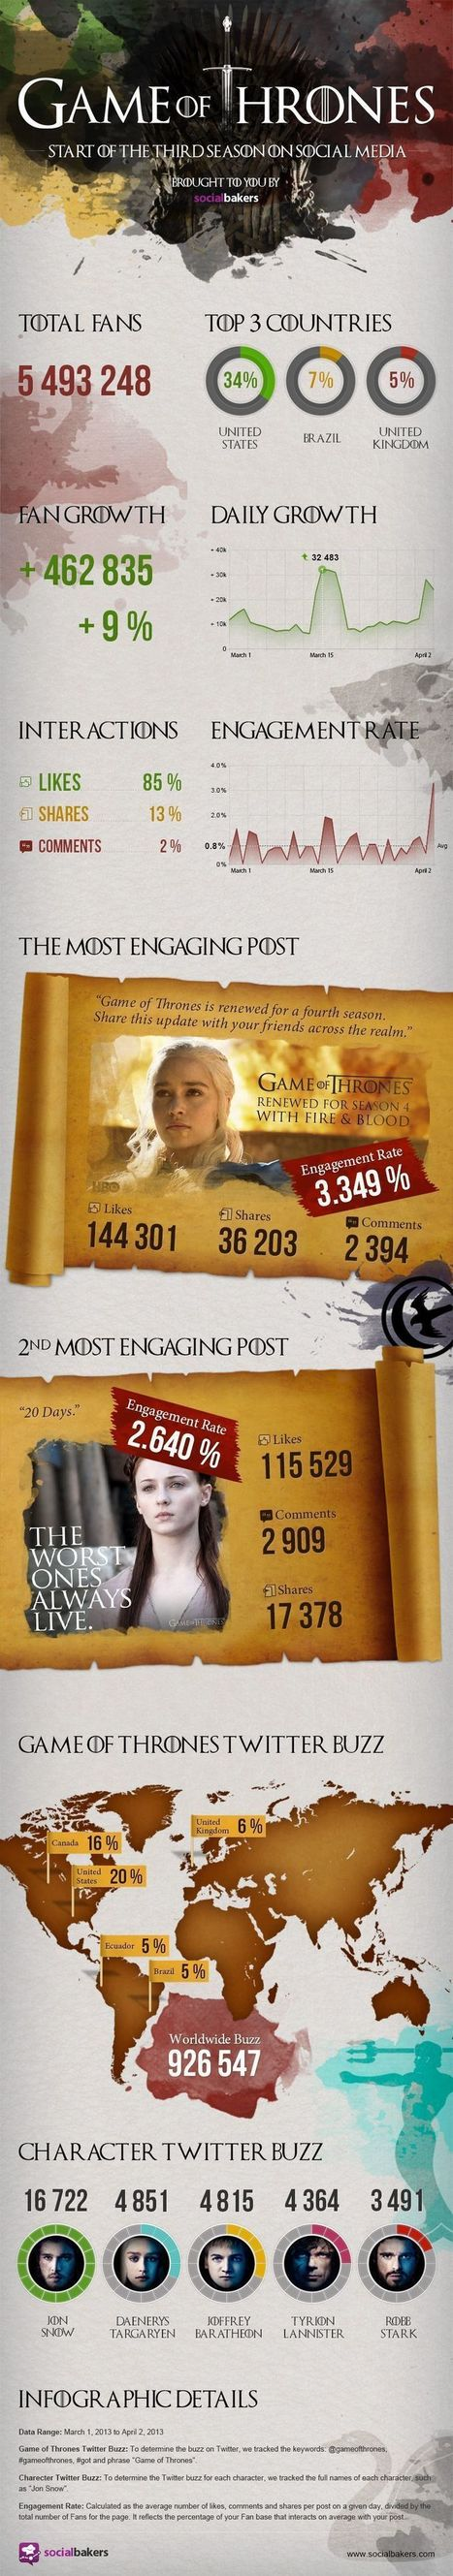 Infographic : Game of Thrones on Social Media | Better know and better use Social Media today (facebook, twitter...) | Scoop.it